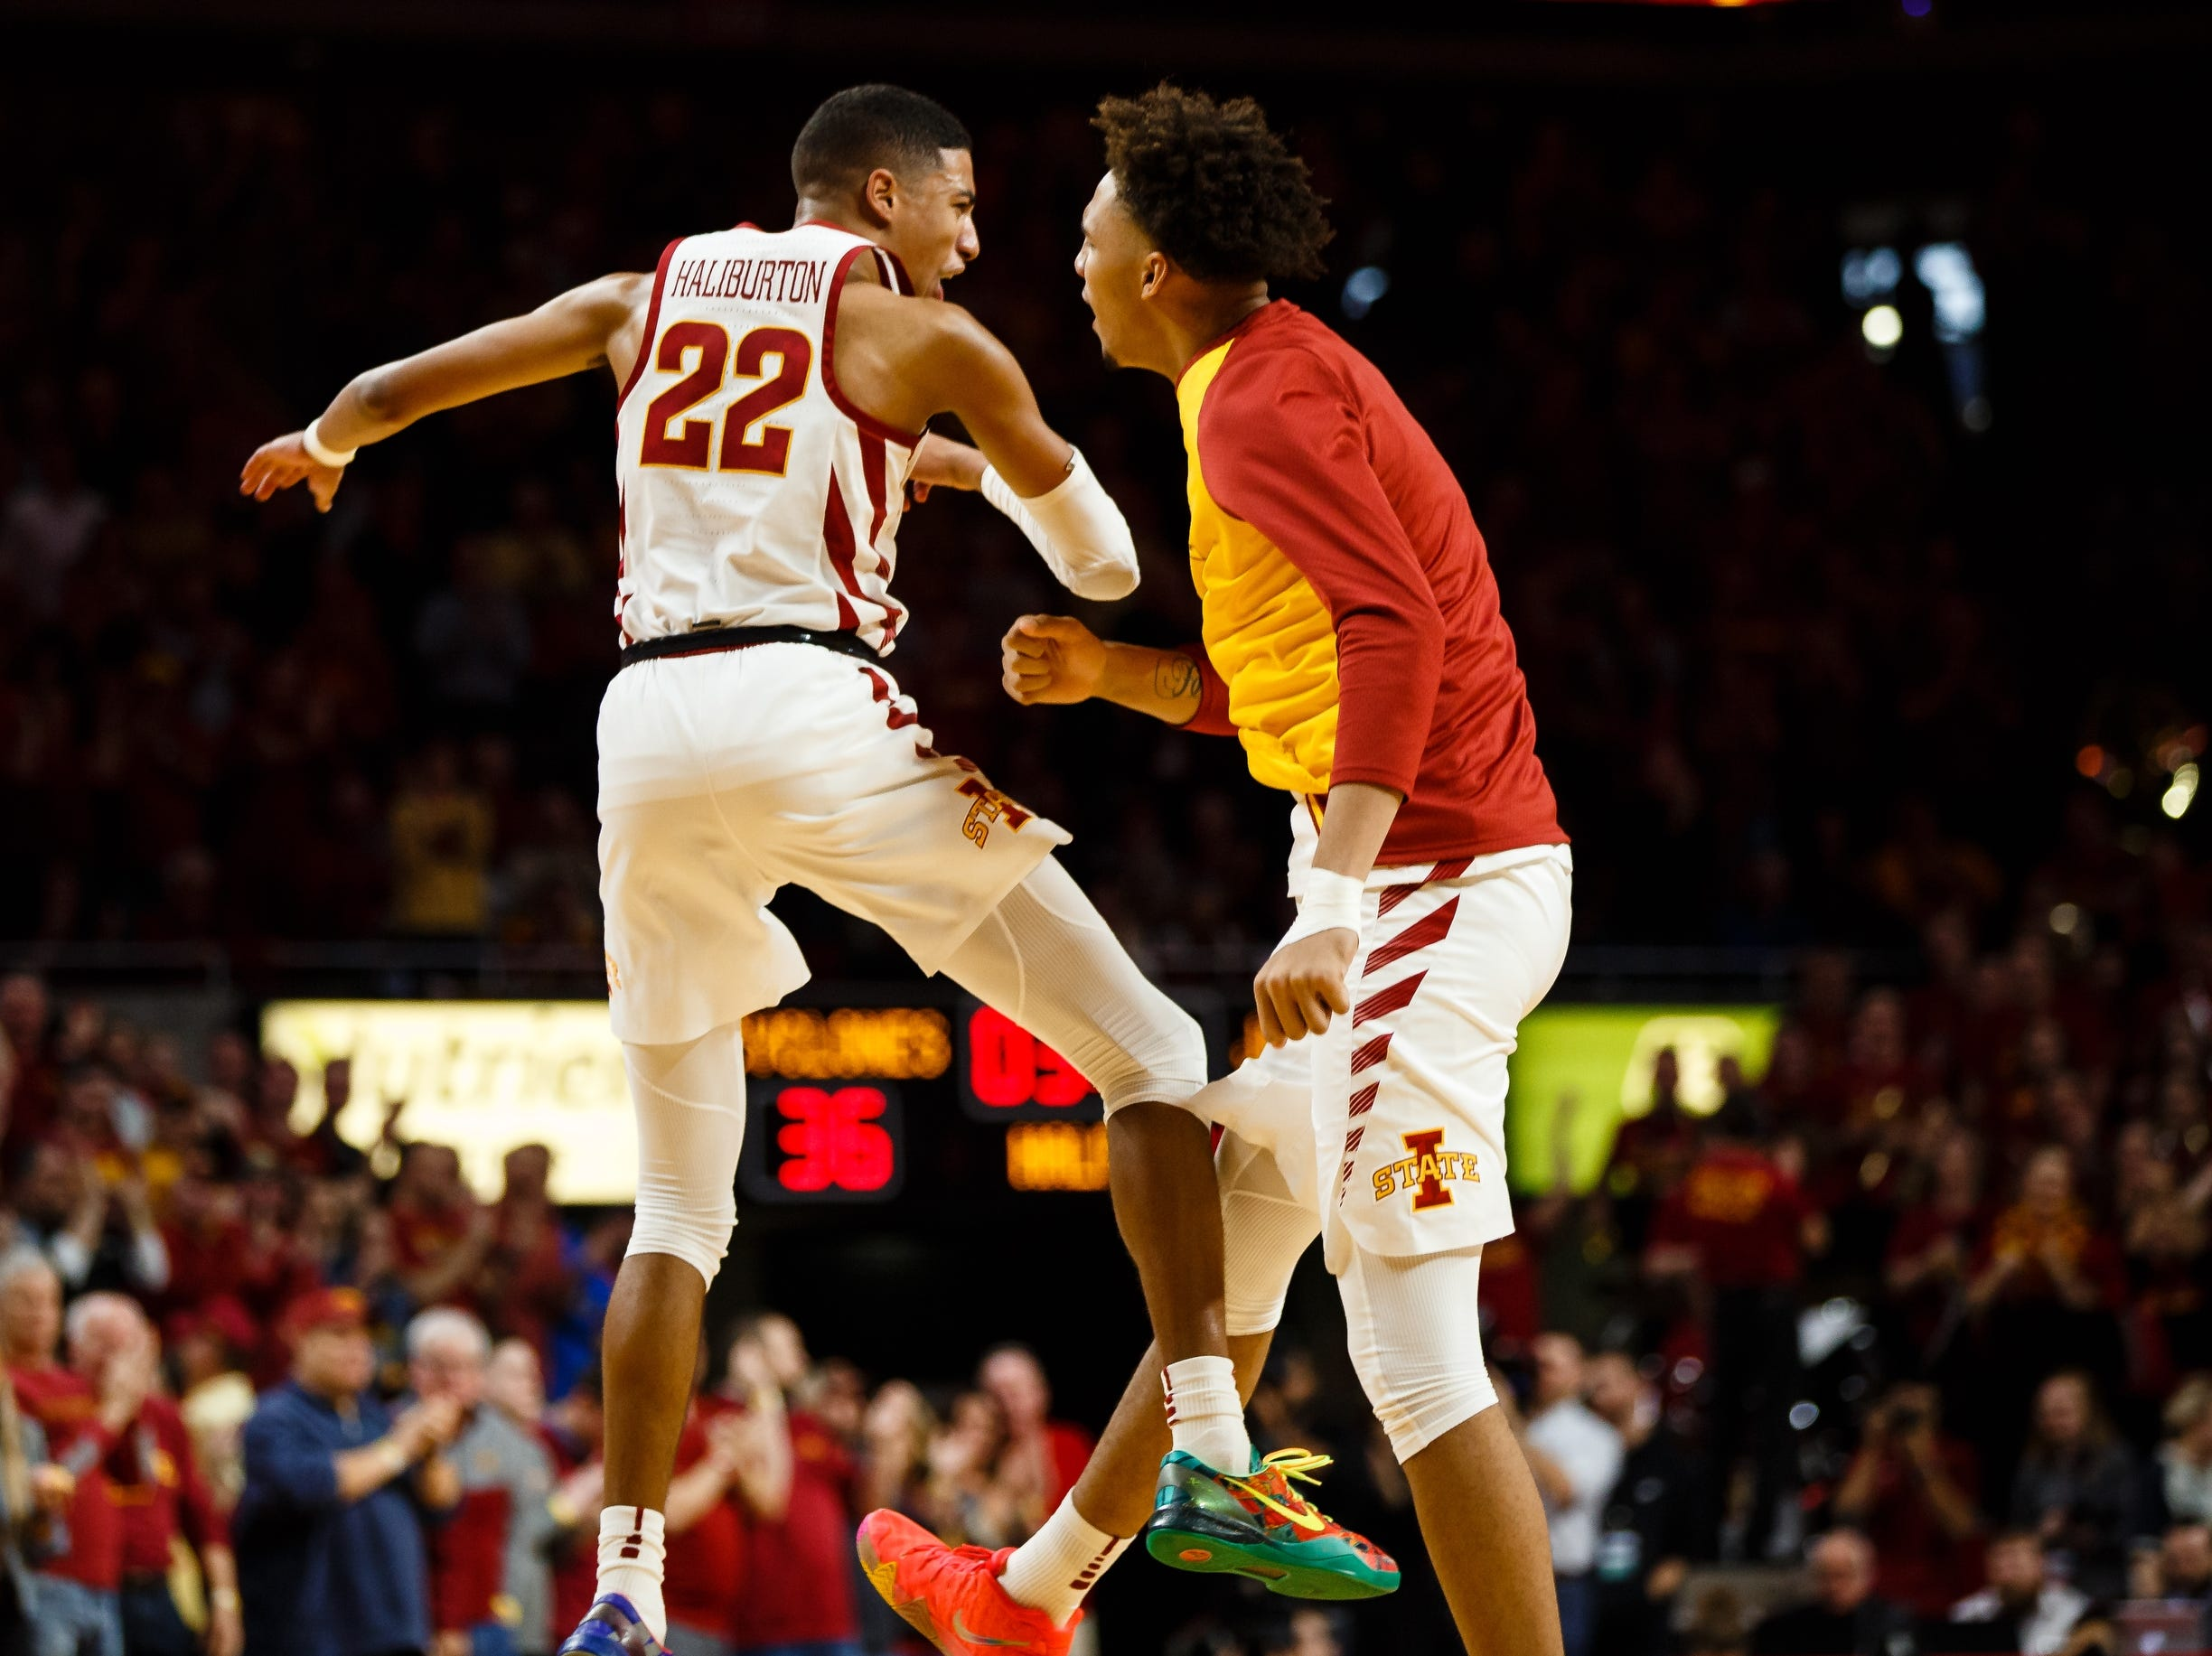 Iowa State's Tyrese Haliburton (22) celebrates with Iowa State's George Conditt IV (4) after a big 3-pointer during the first half of their basketball game on Saturday, Jan. 5, 2019, in Ames.